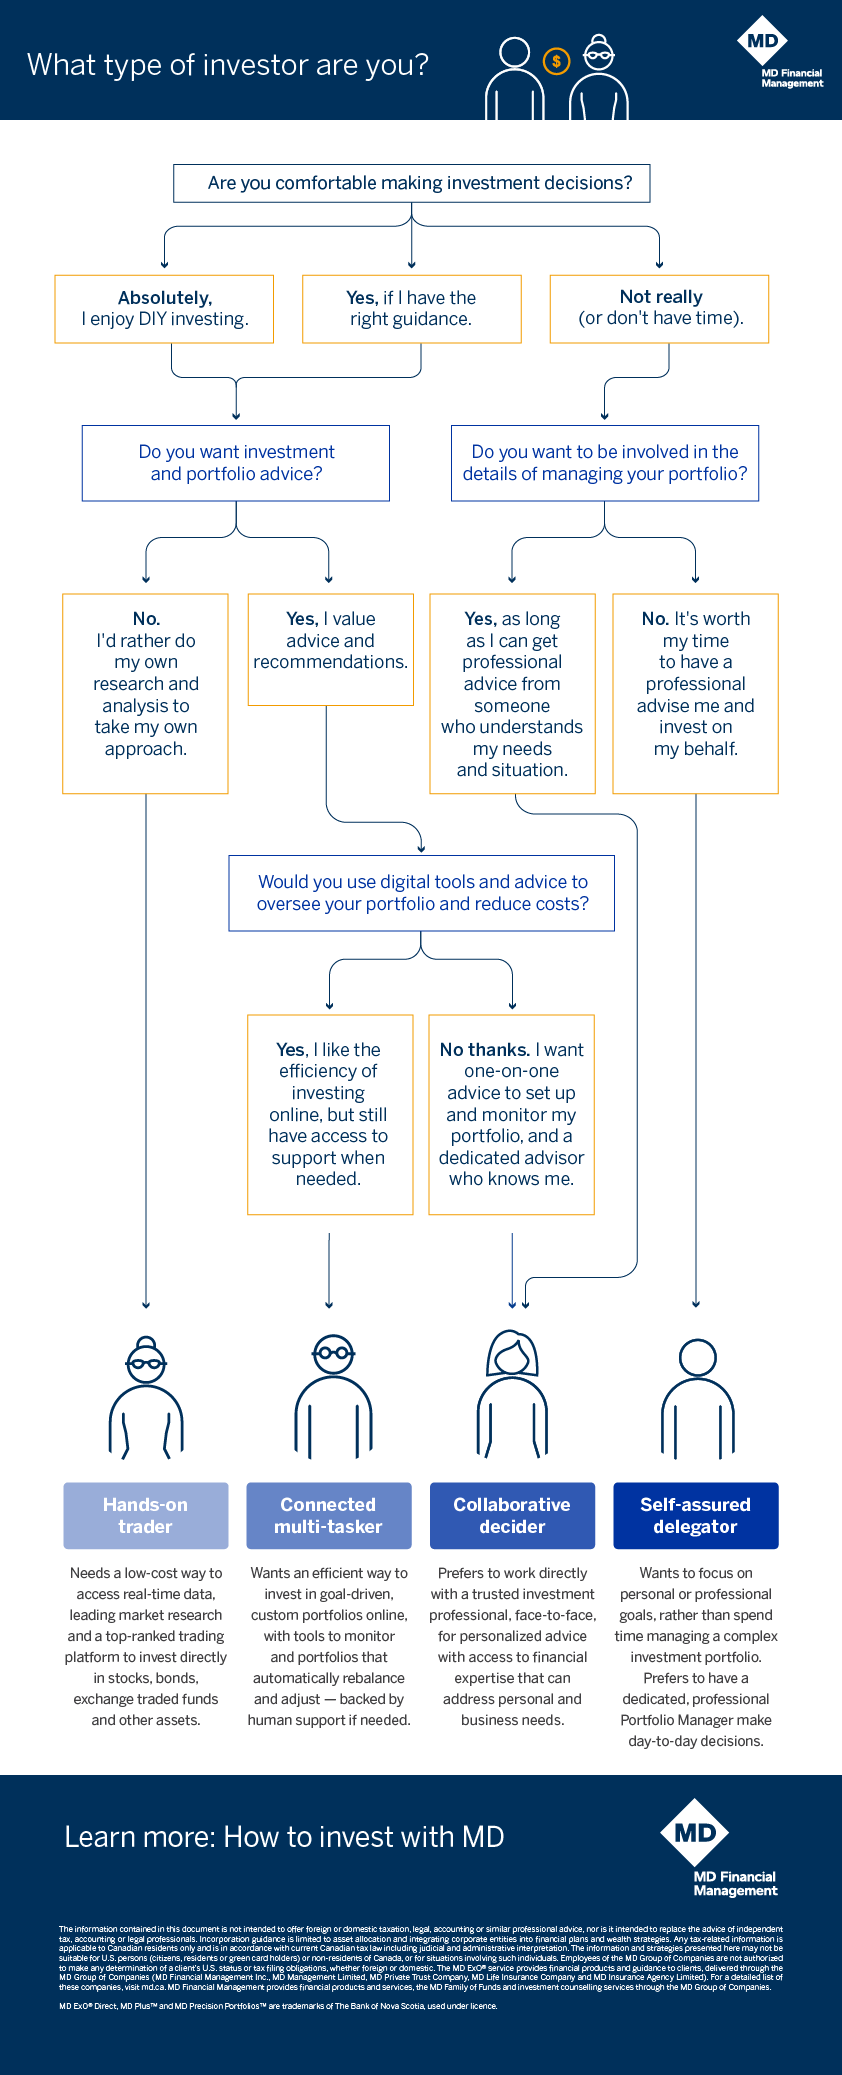 What type of investor are you infographic